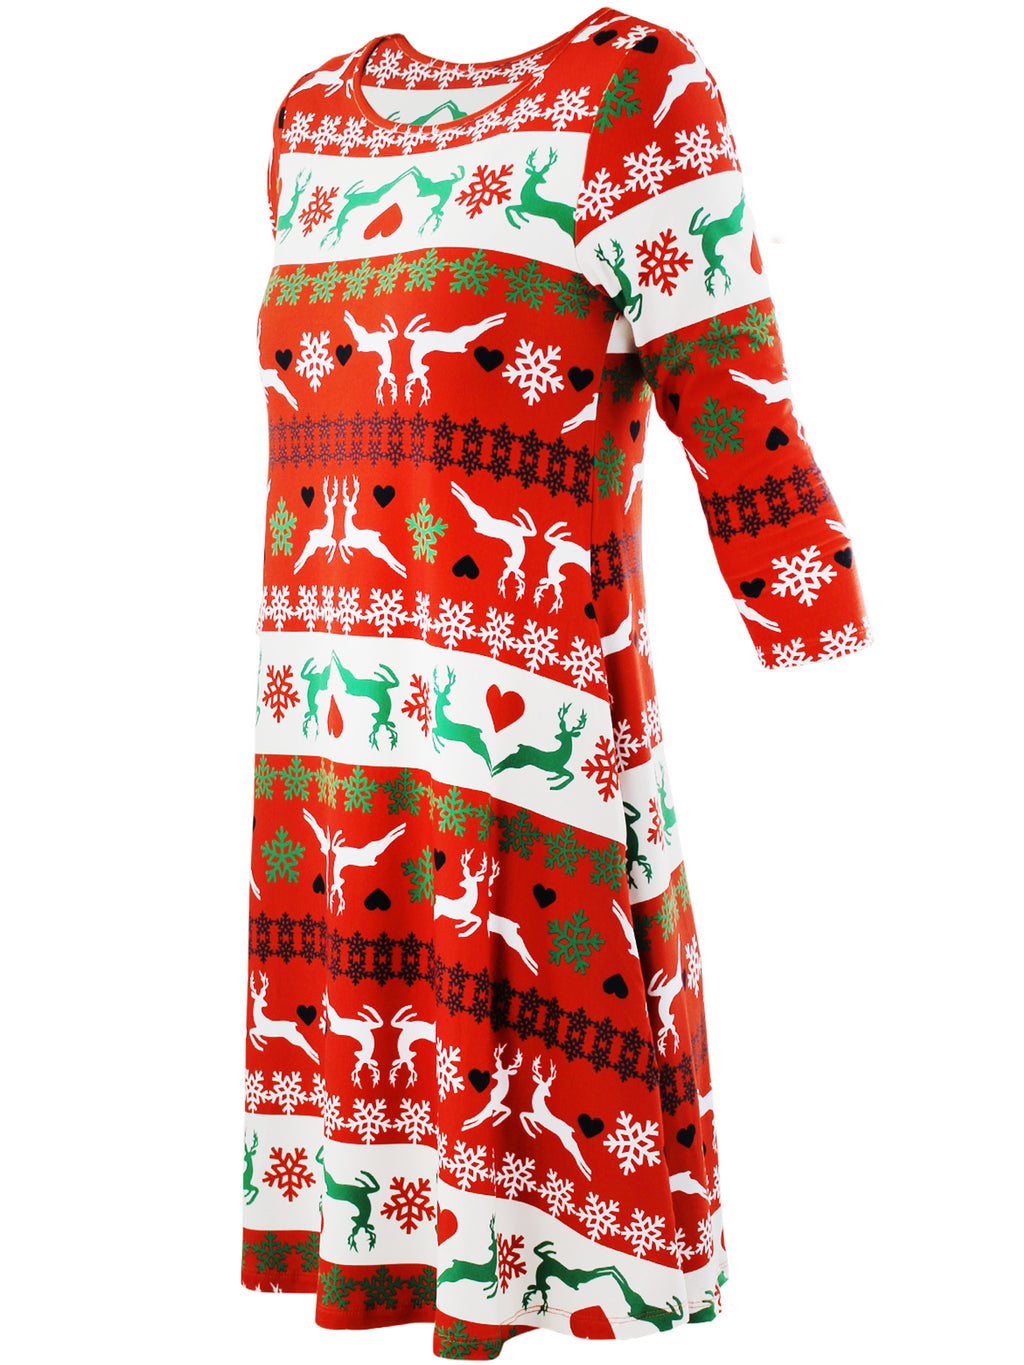 Reindeer Holiday Christmas Swing Dress